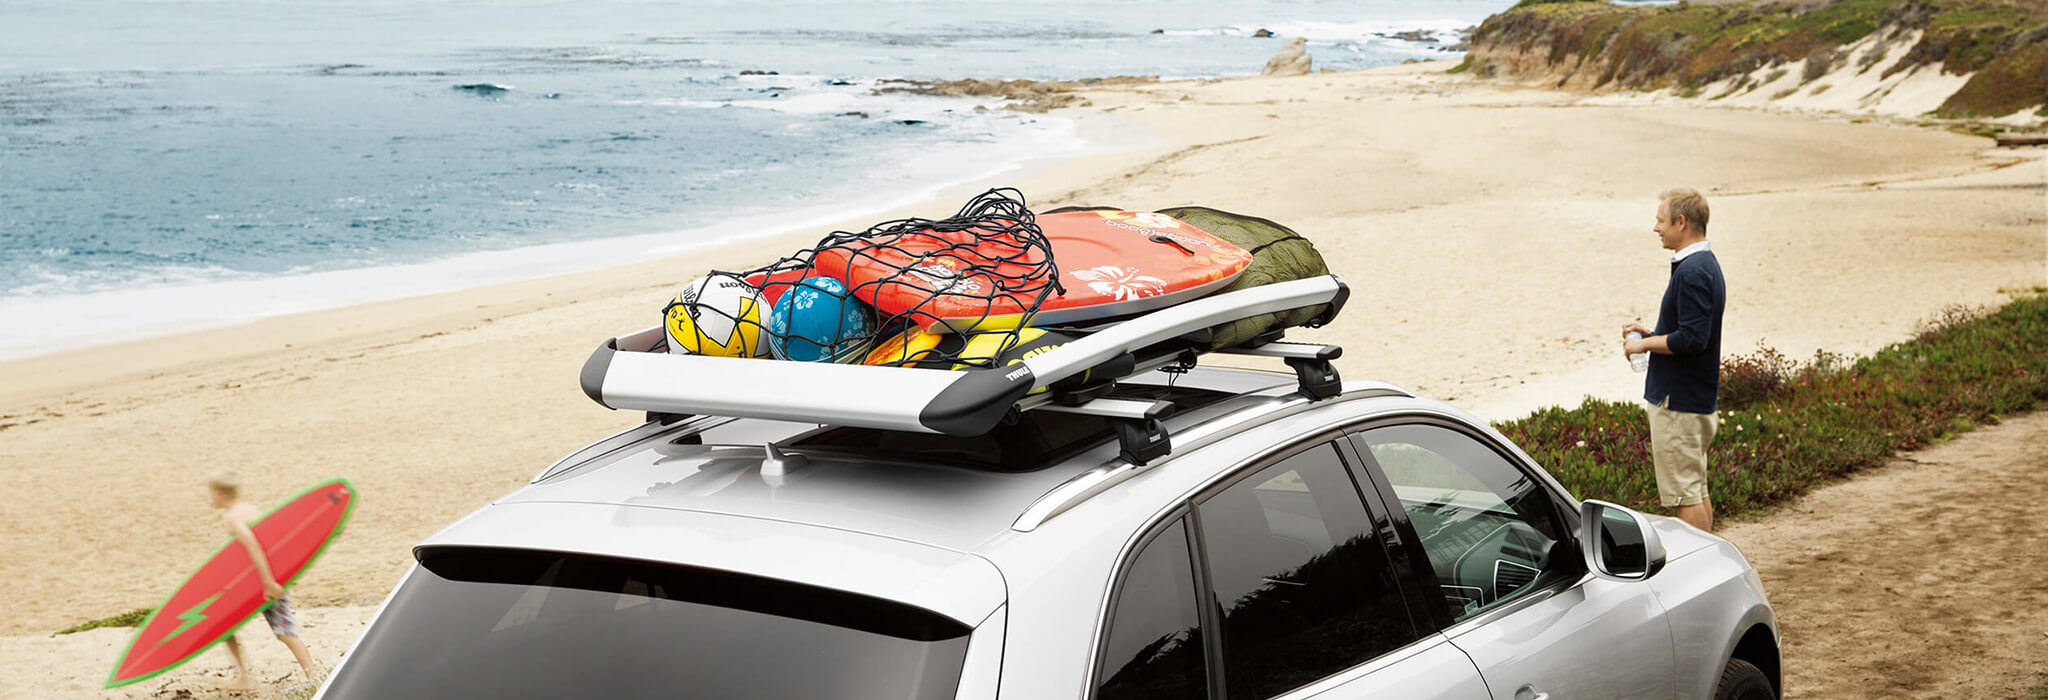 Thule Cargo Basket Carrier